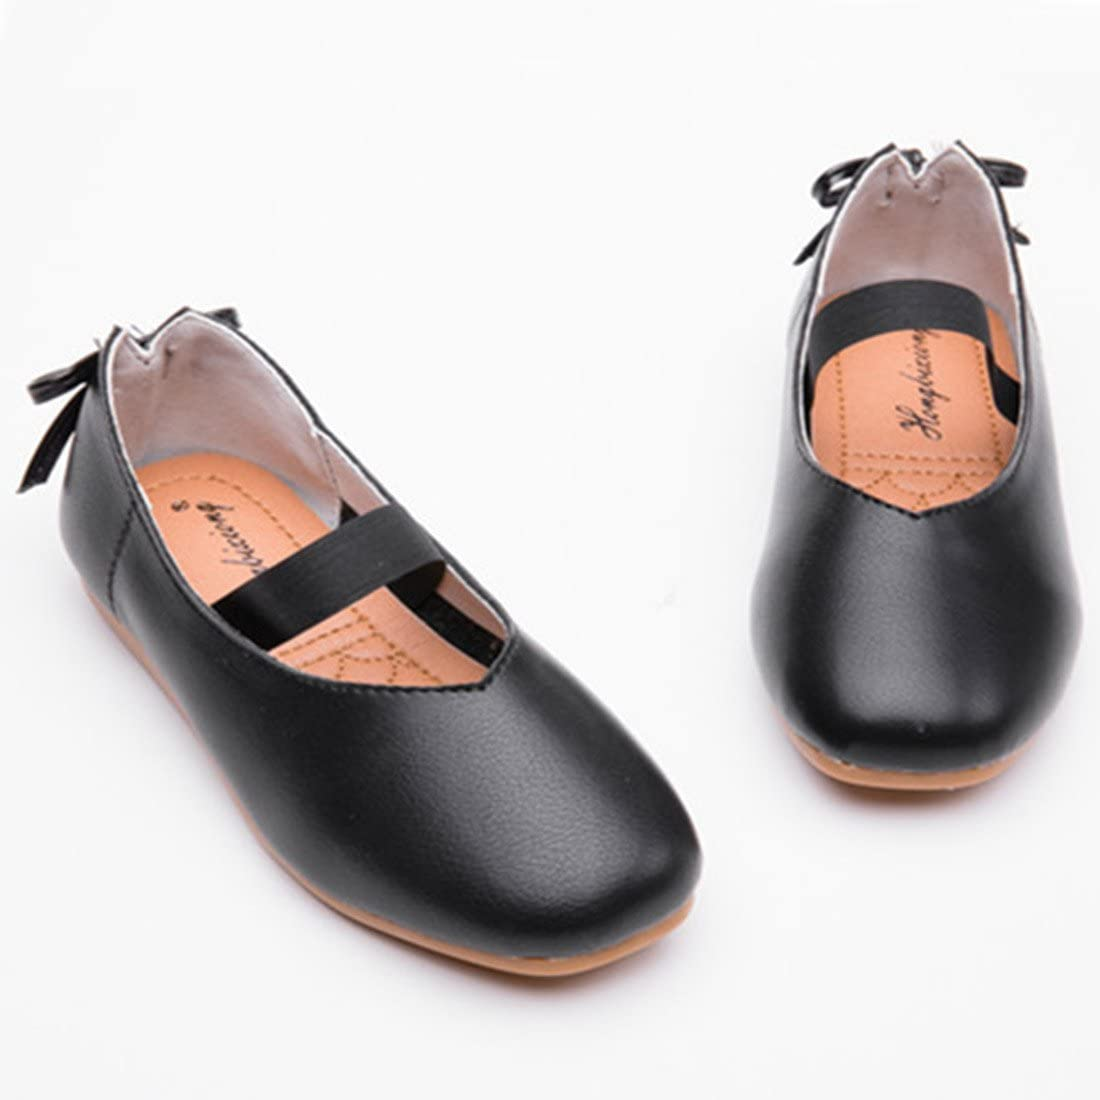 ON Kids Toddler Girls Princess Wedding Party School Shoes Mary Janes Ballet Flats Dress Shoe